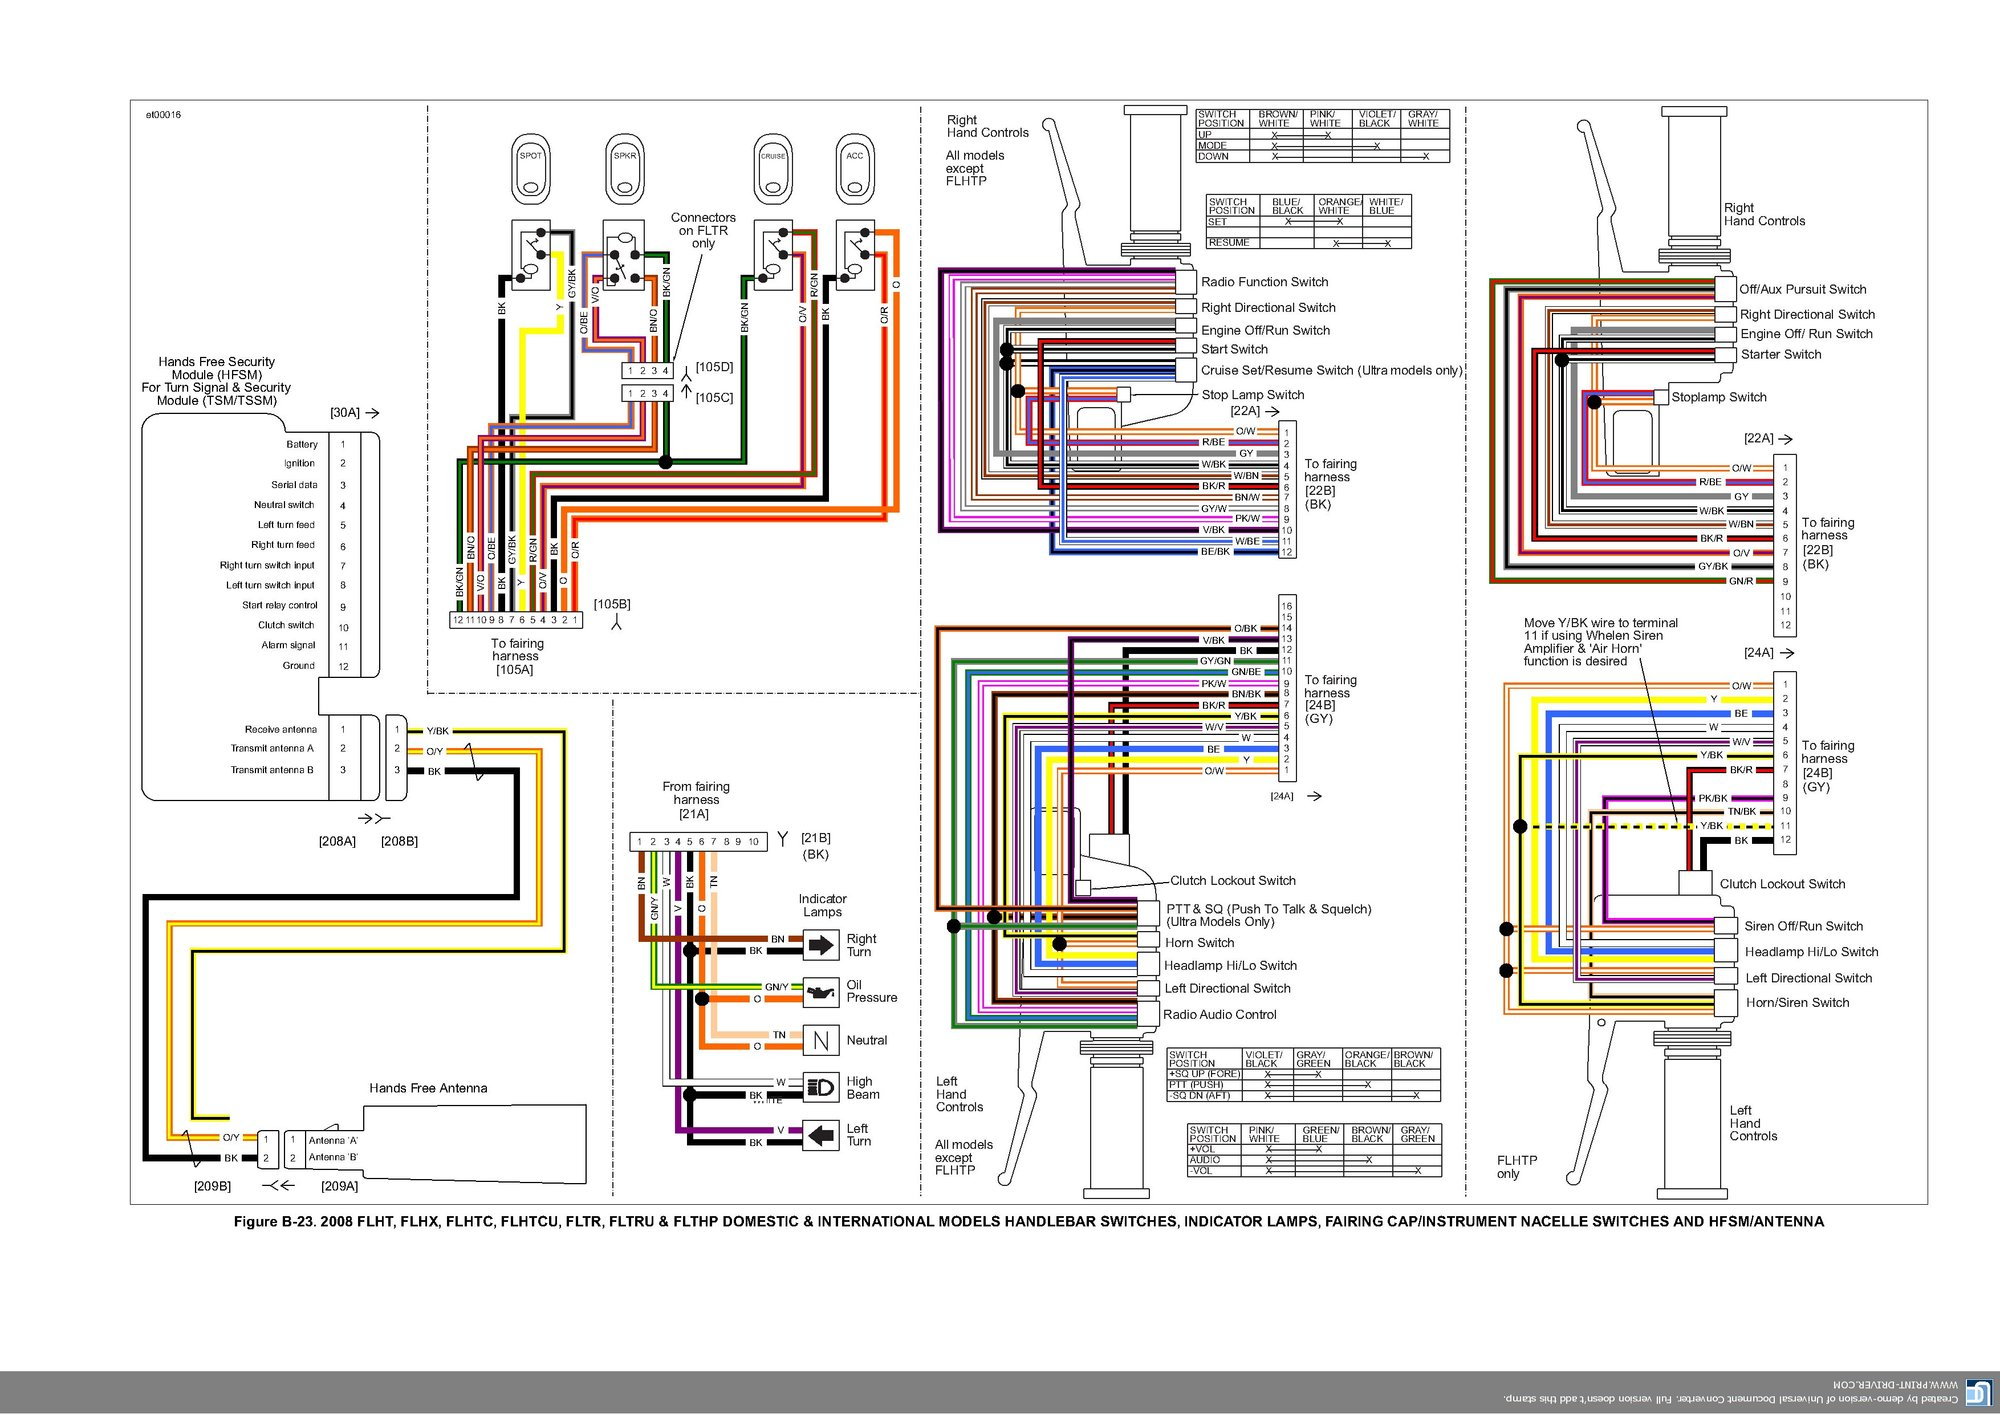 Wiring Diagram For 2009 Harley Touring - Wiring Diagram All skip-private -  skip-private.huevoprint.it | 2014 Street Glide Wiring Diagram |  | Huevoprint